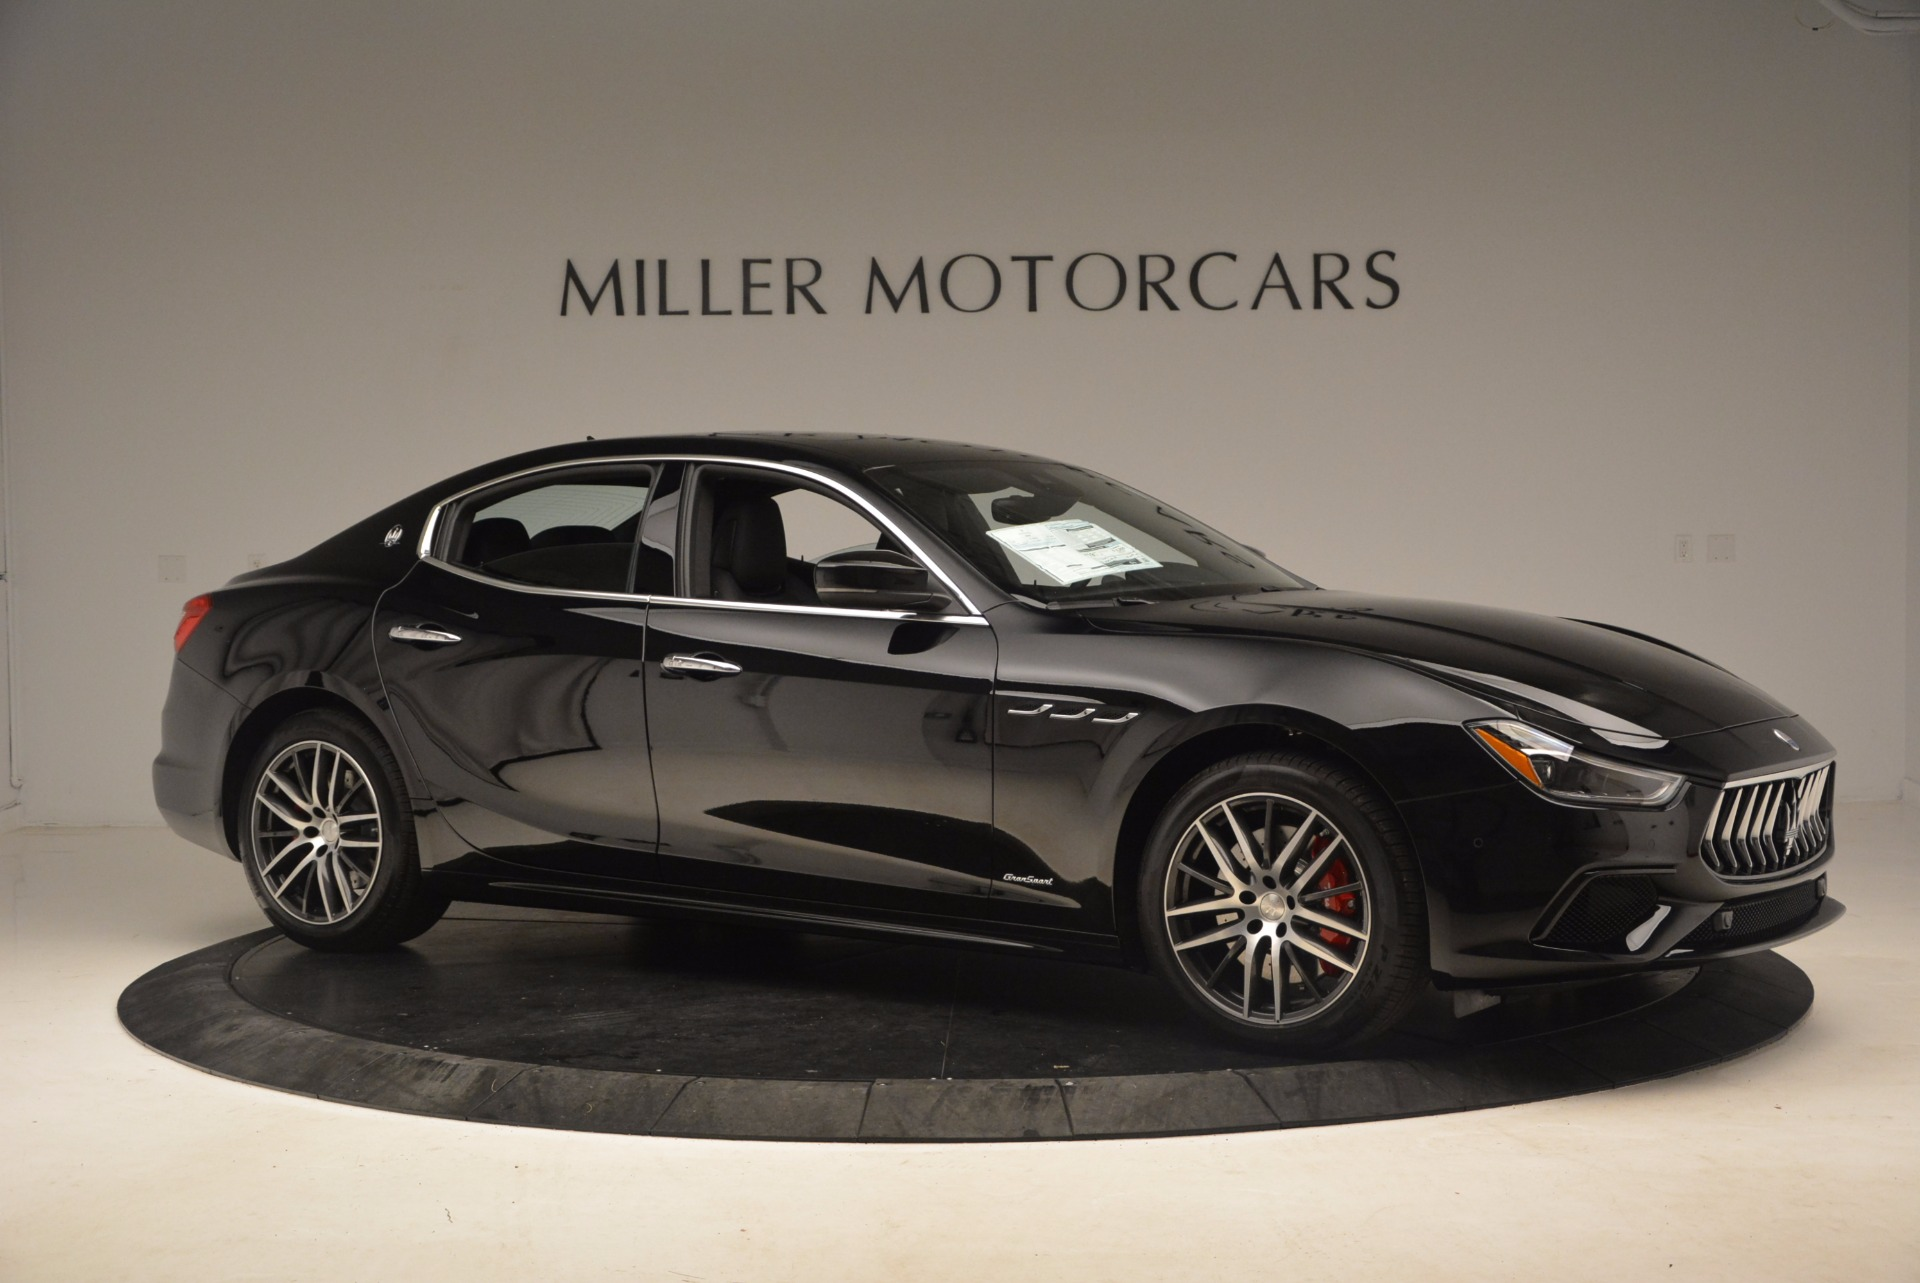 Used 2018 Maserati Ghibli S Q4 Gransport For Sale In Greenwich, CT 1568_p10